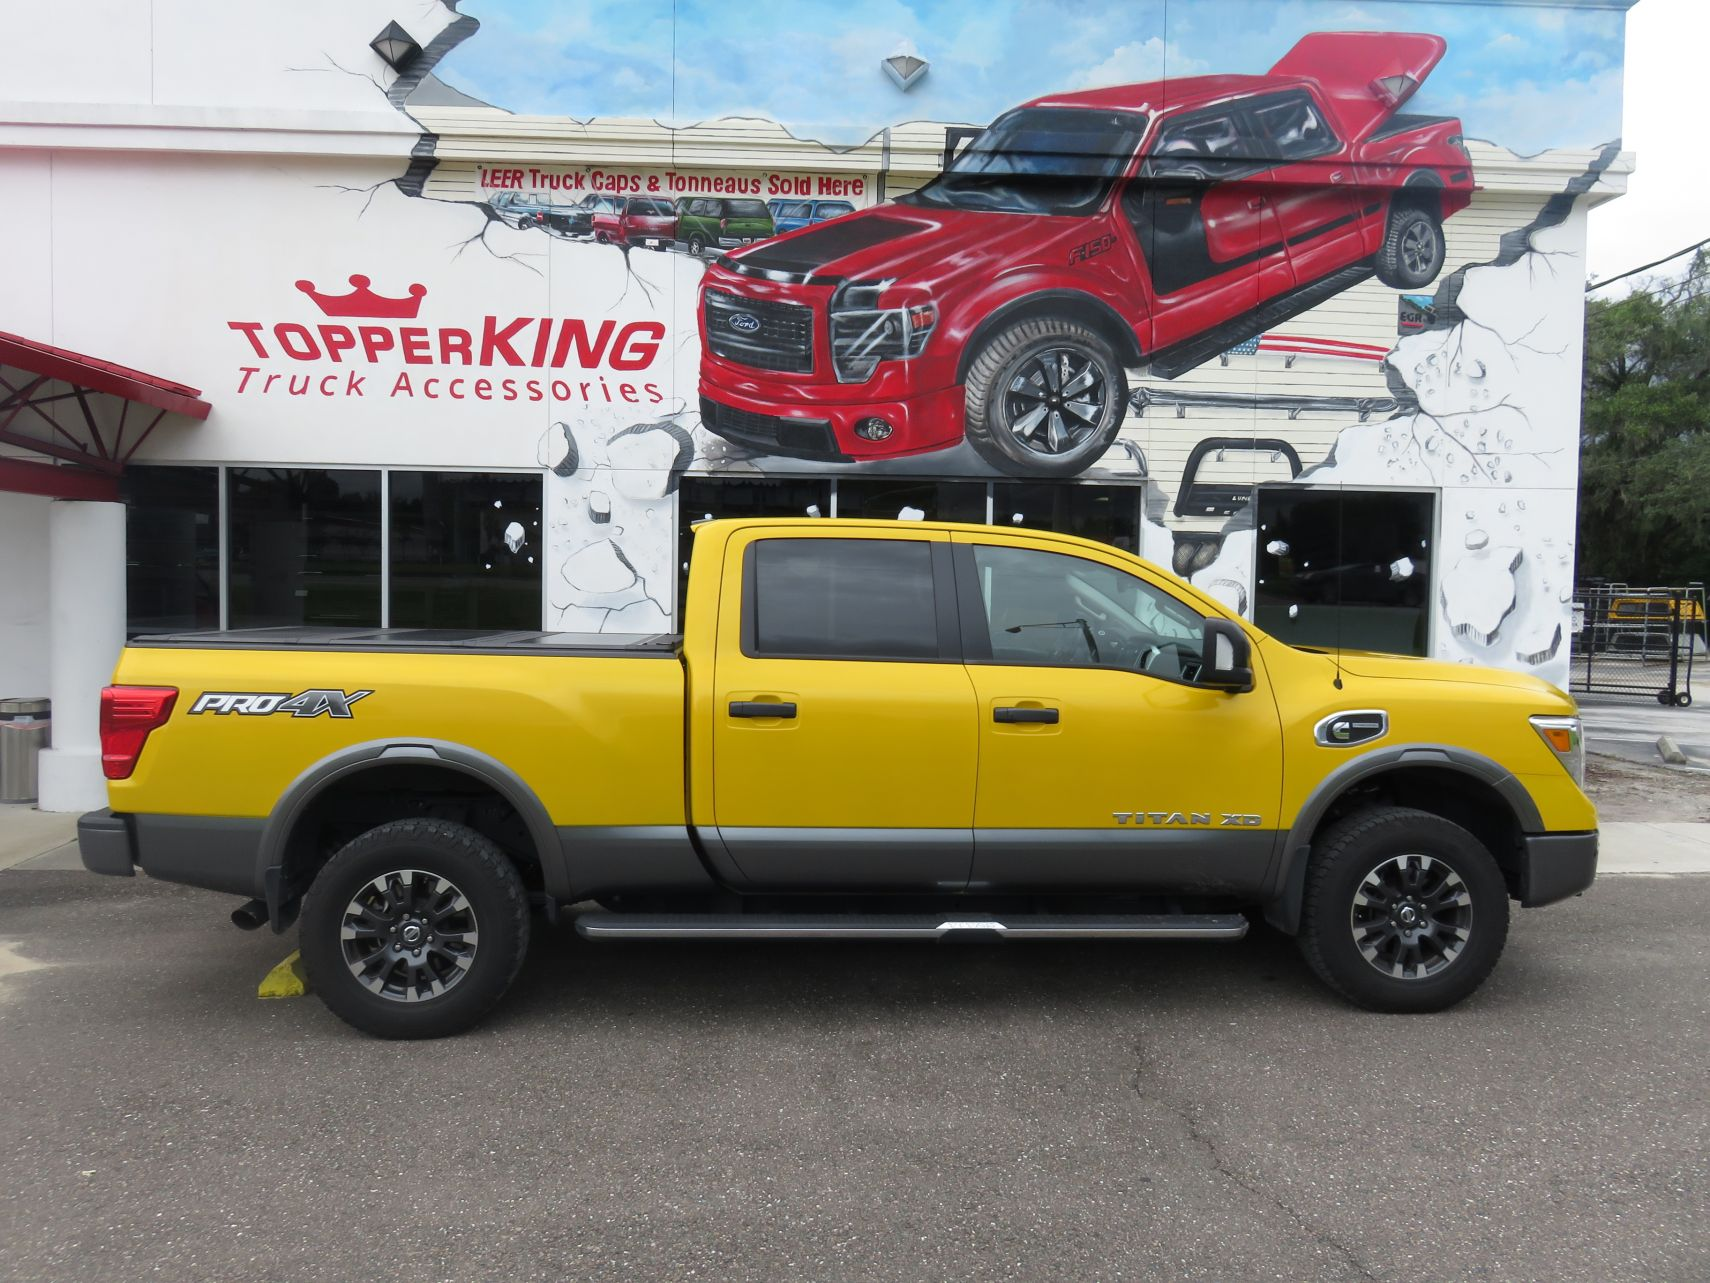 2017 Yellow Nissan Titan with a Leer Trilogy X2T folding tonneau cover, a custom hitch, running boards, and tint by TopperKING in Brandon, FL 813-689-2449 Call today to start on your truck!